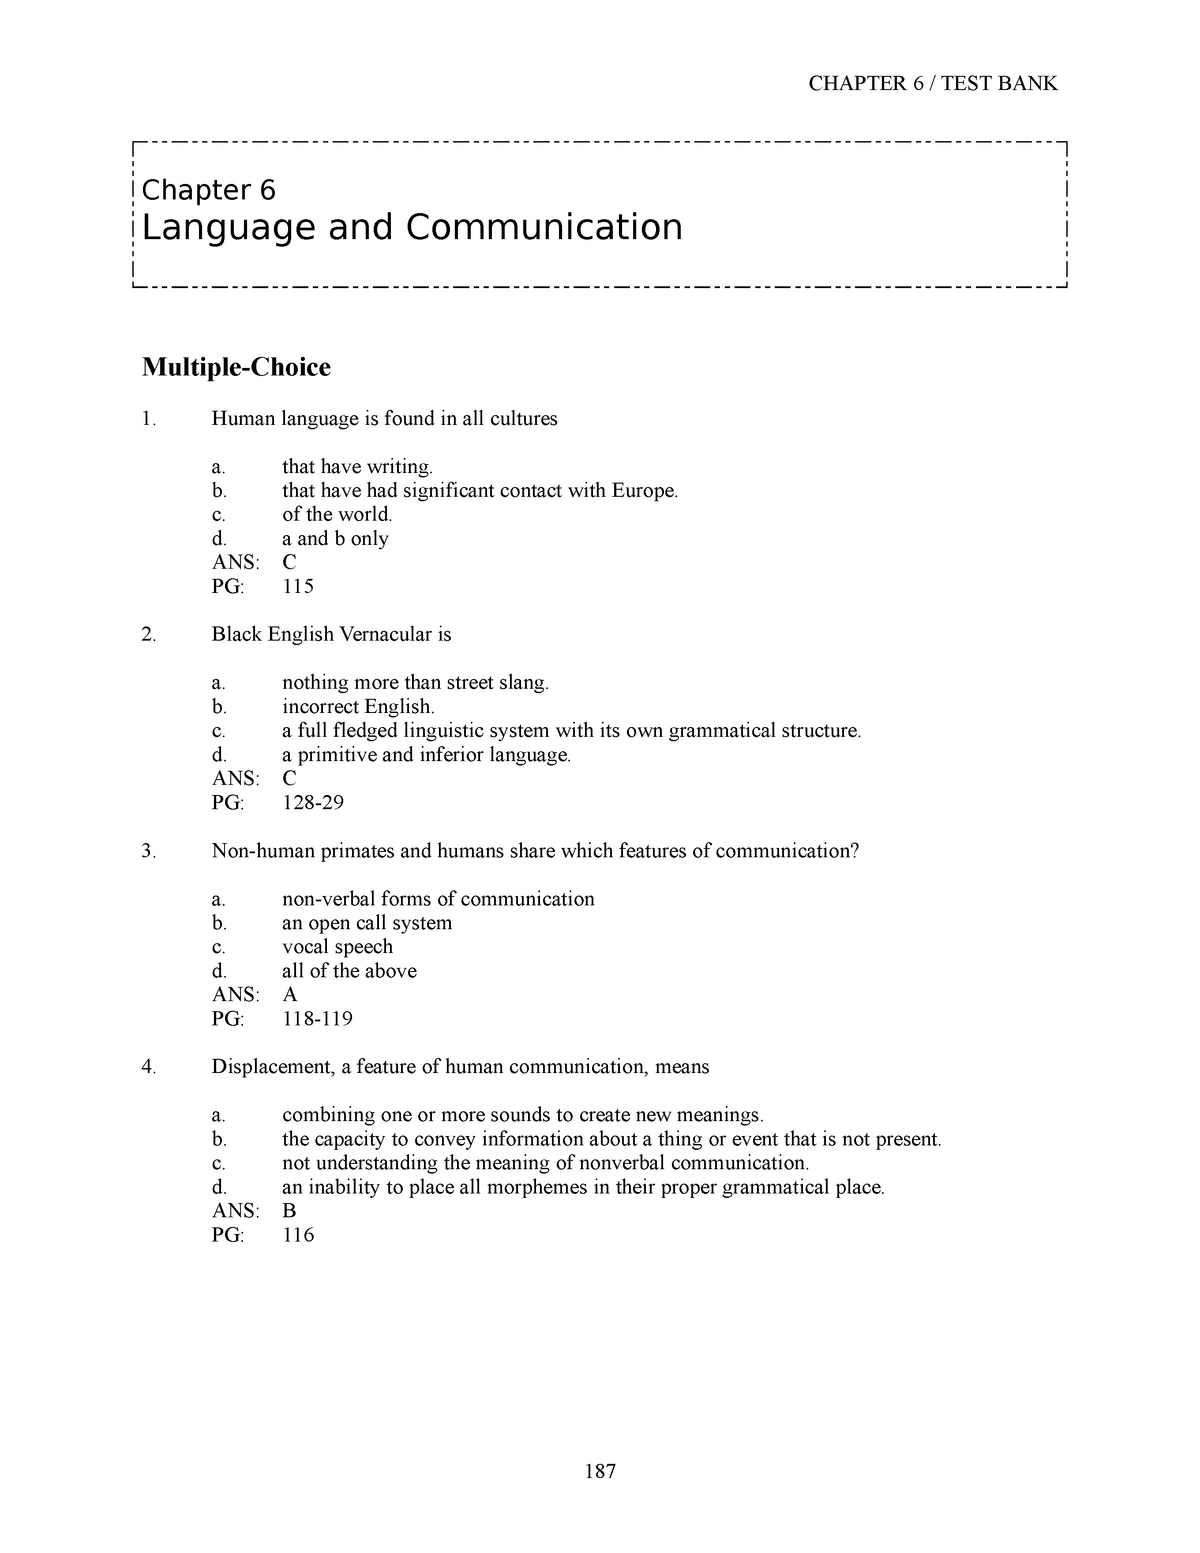 Sample/practice Exam 2014, Questions and Answers - Chapter 6